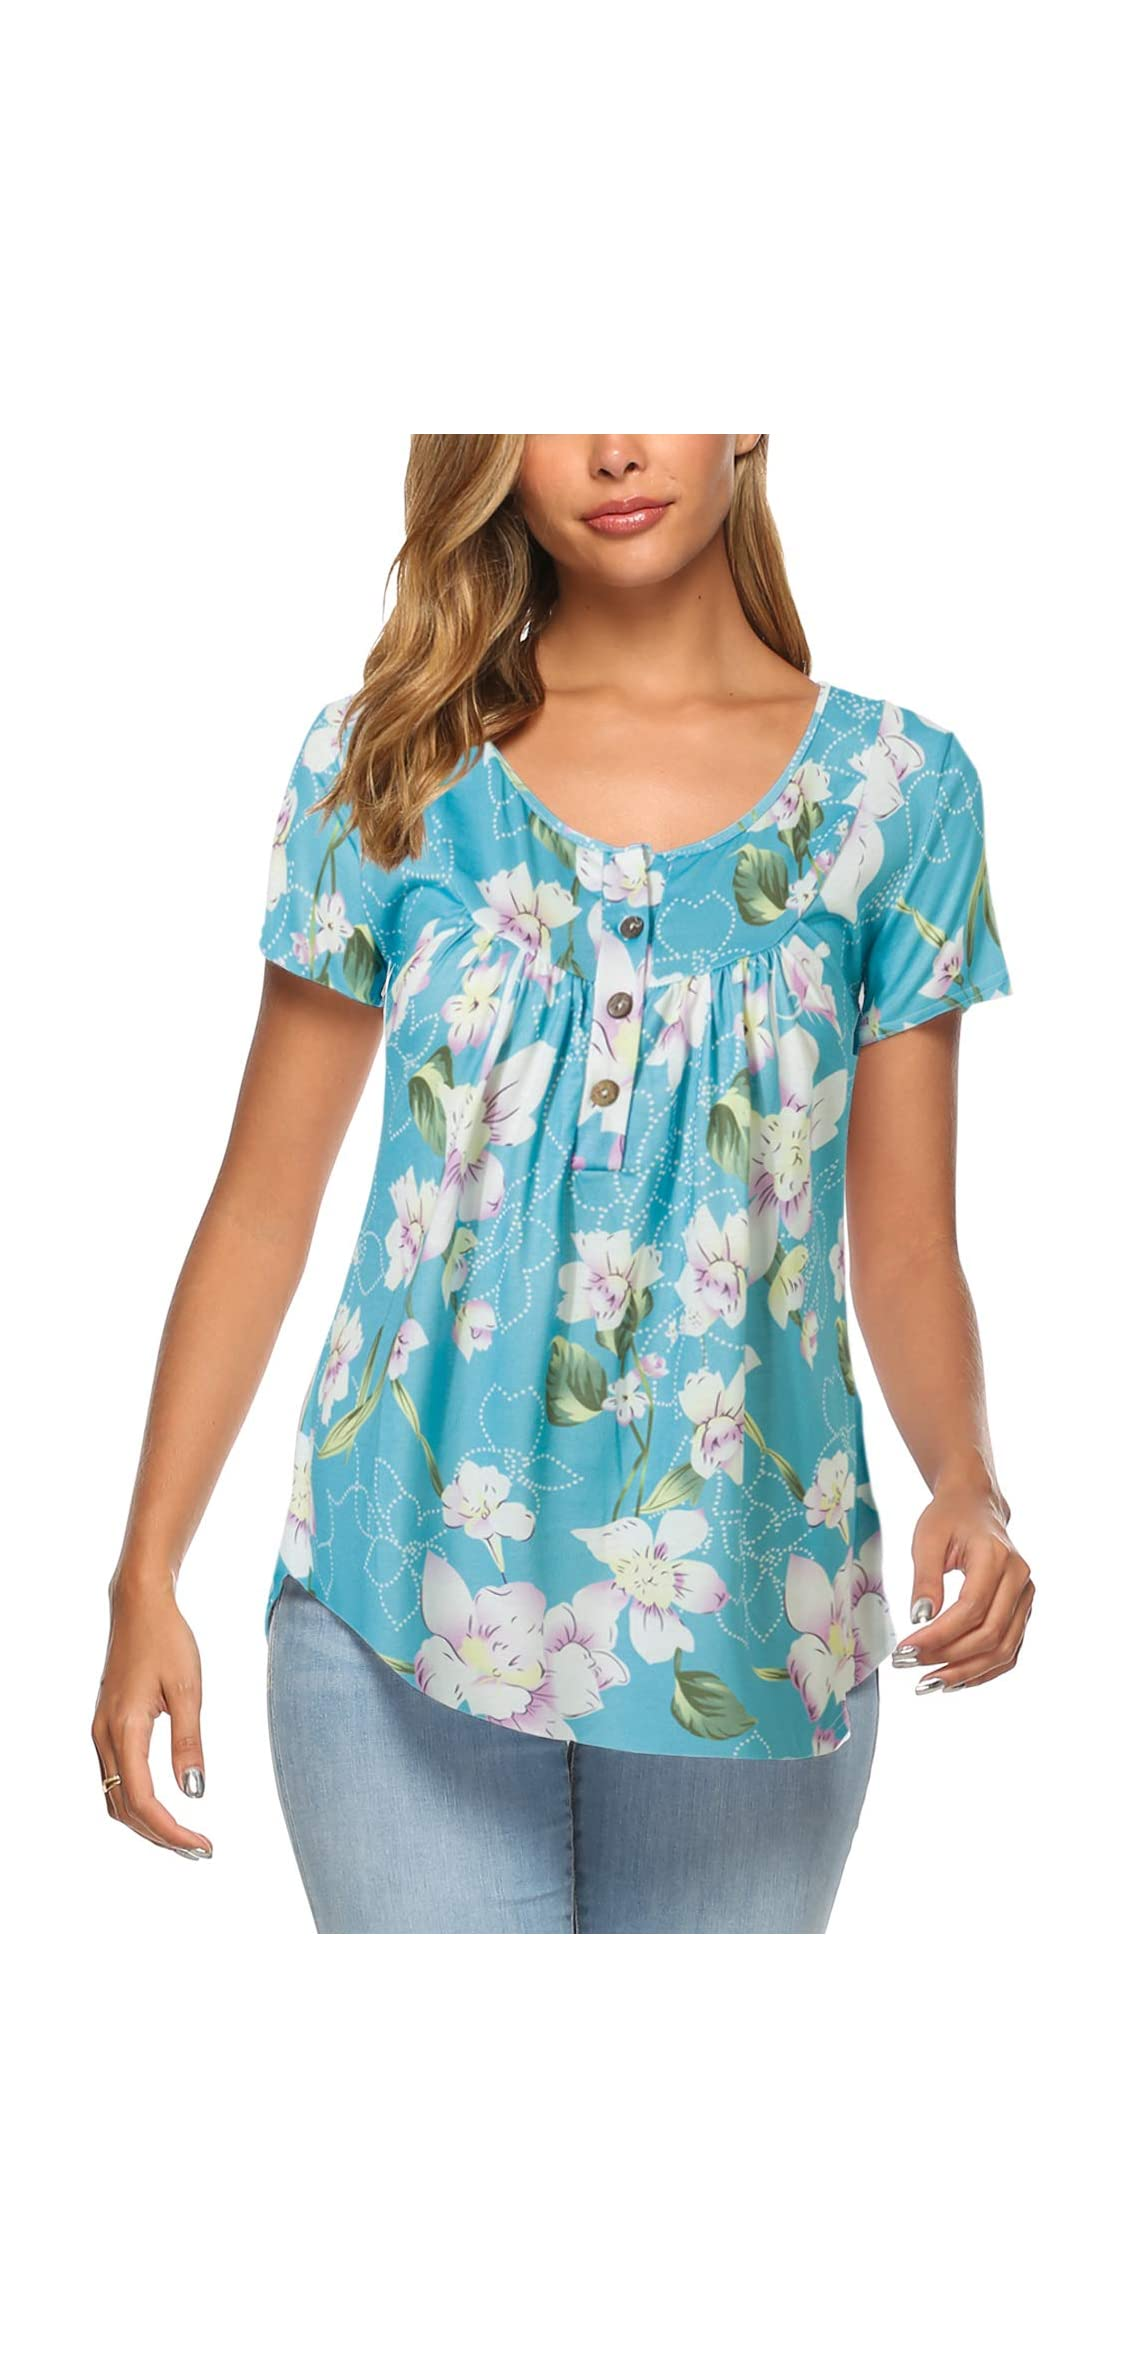 Womens Short Sleeve Floral Summer Tee T Shirts Button Up Tunic